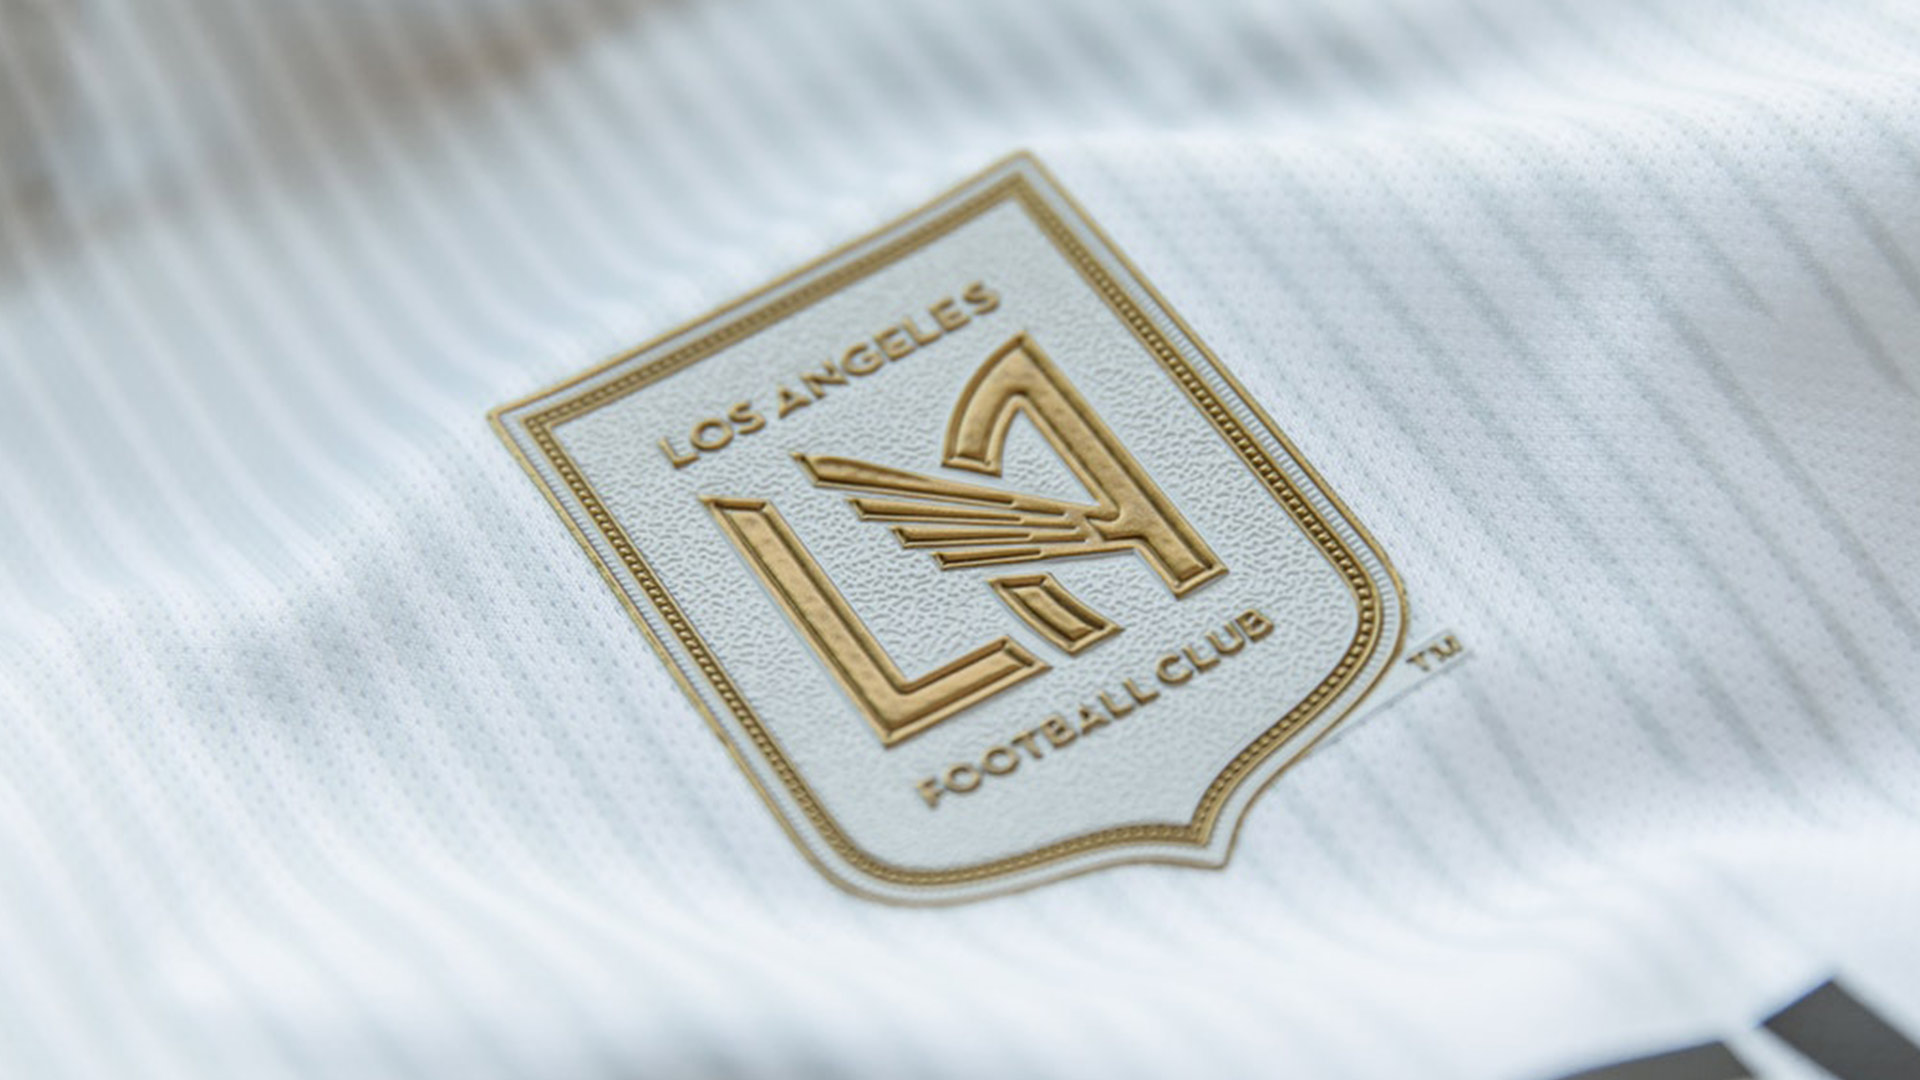 LAFC MATTHEW WOLFF KIT DESIGN AWAY 2017-18 ADIDAS